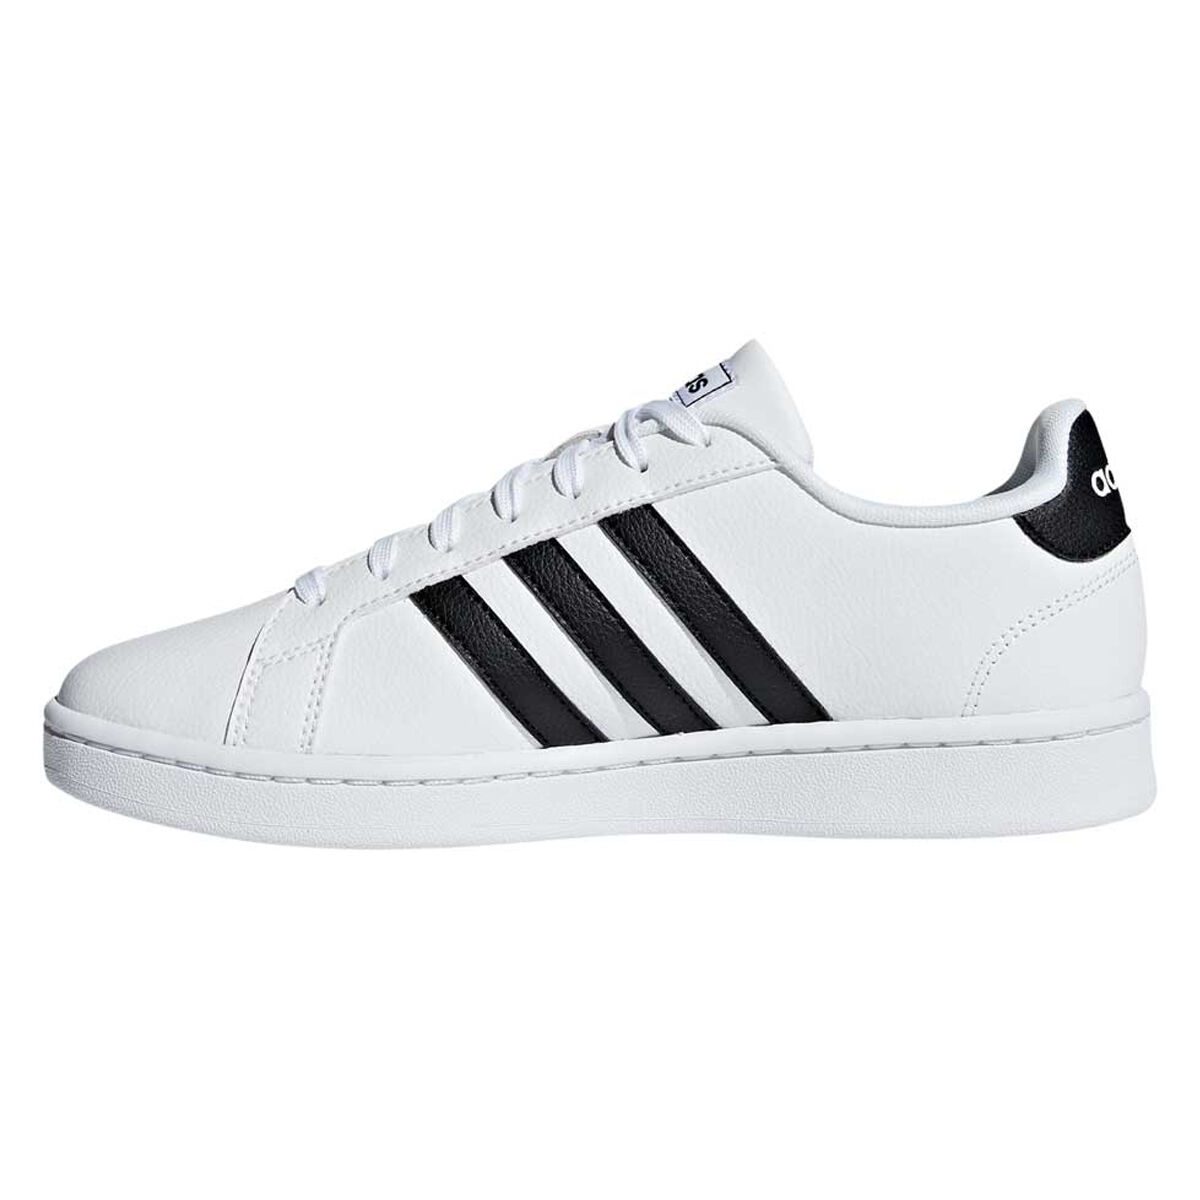 adidas Women's Grand Court Shoe